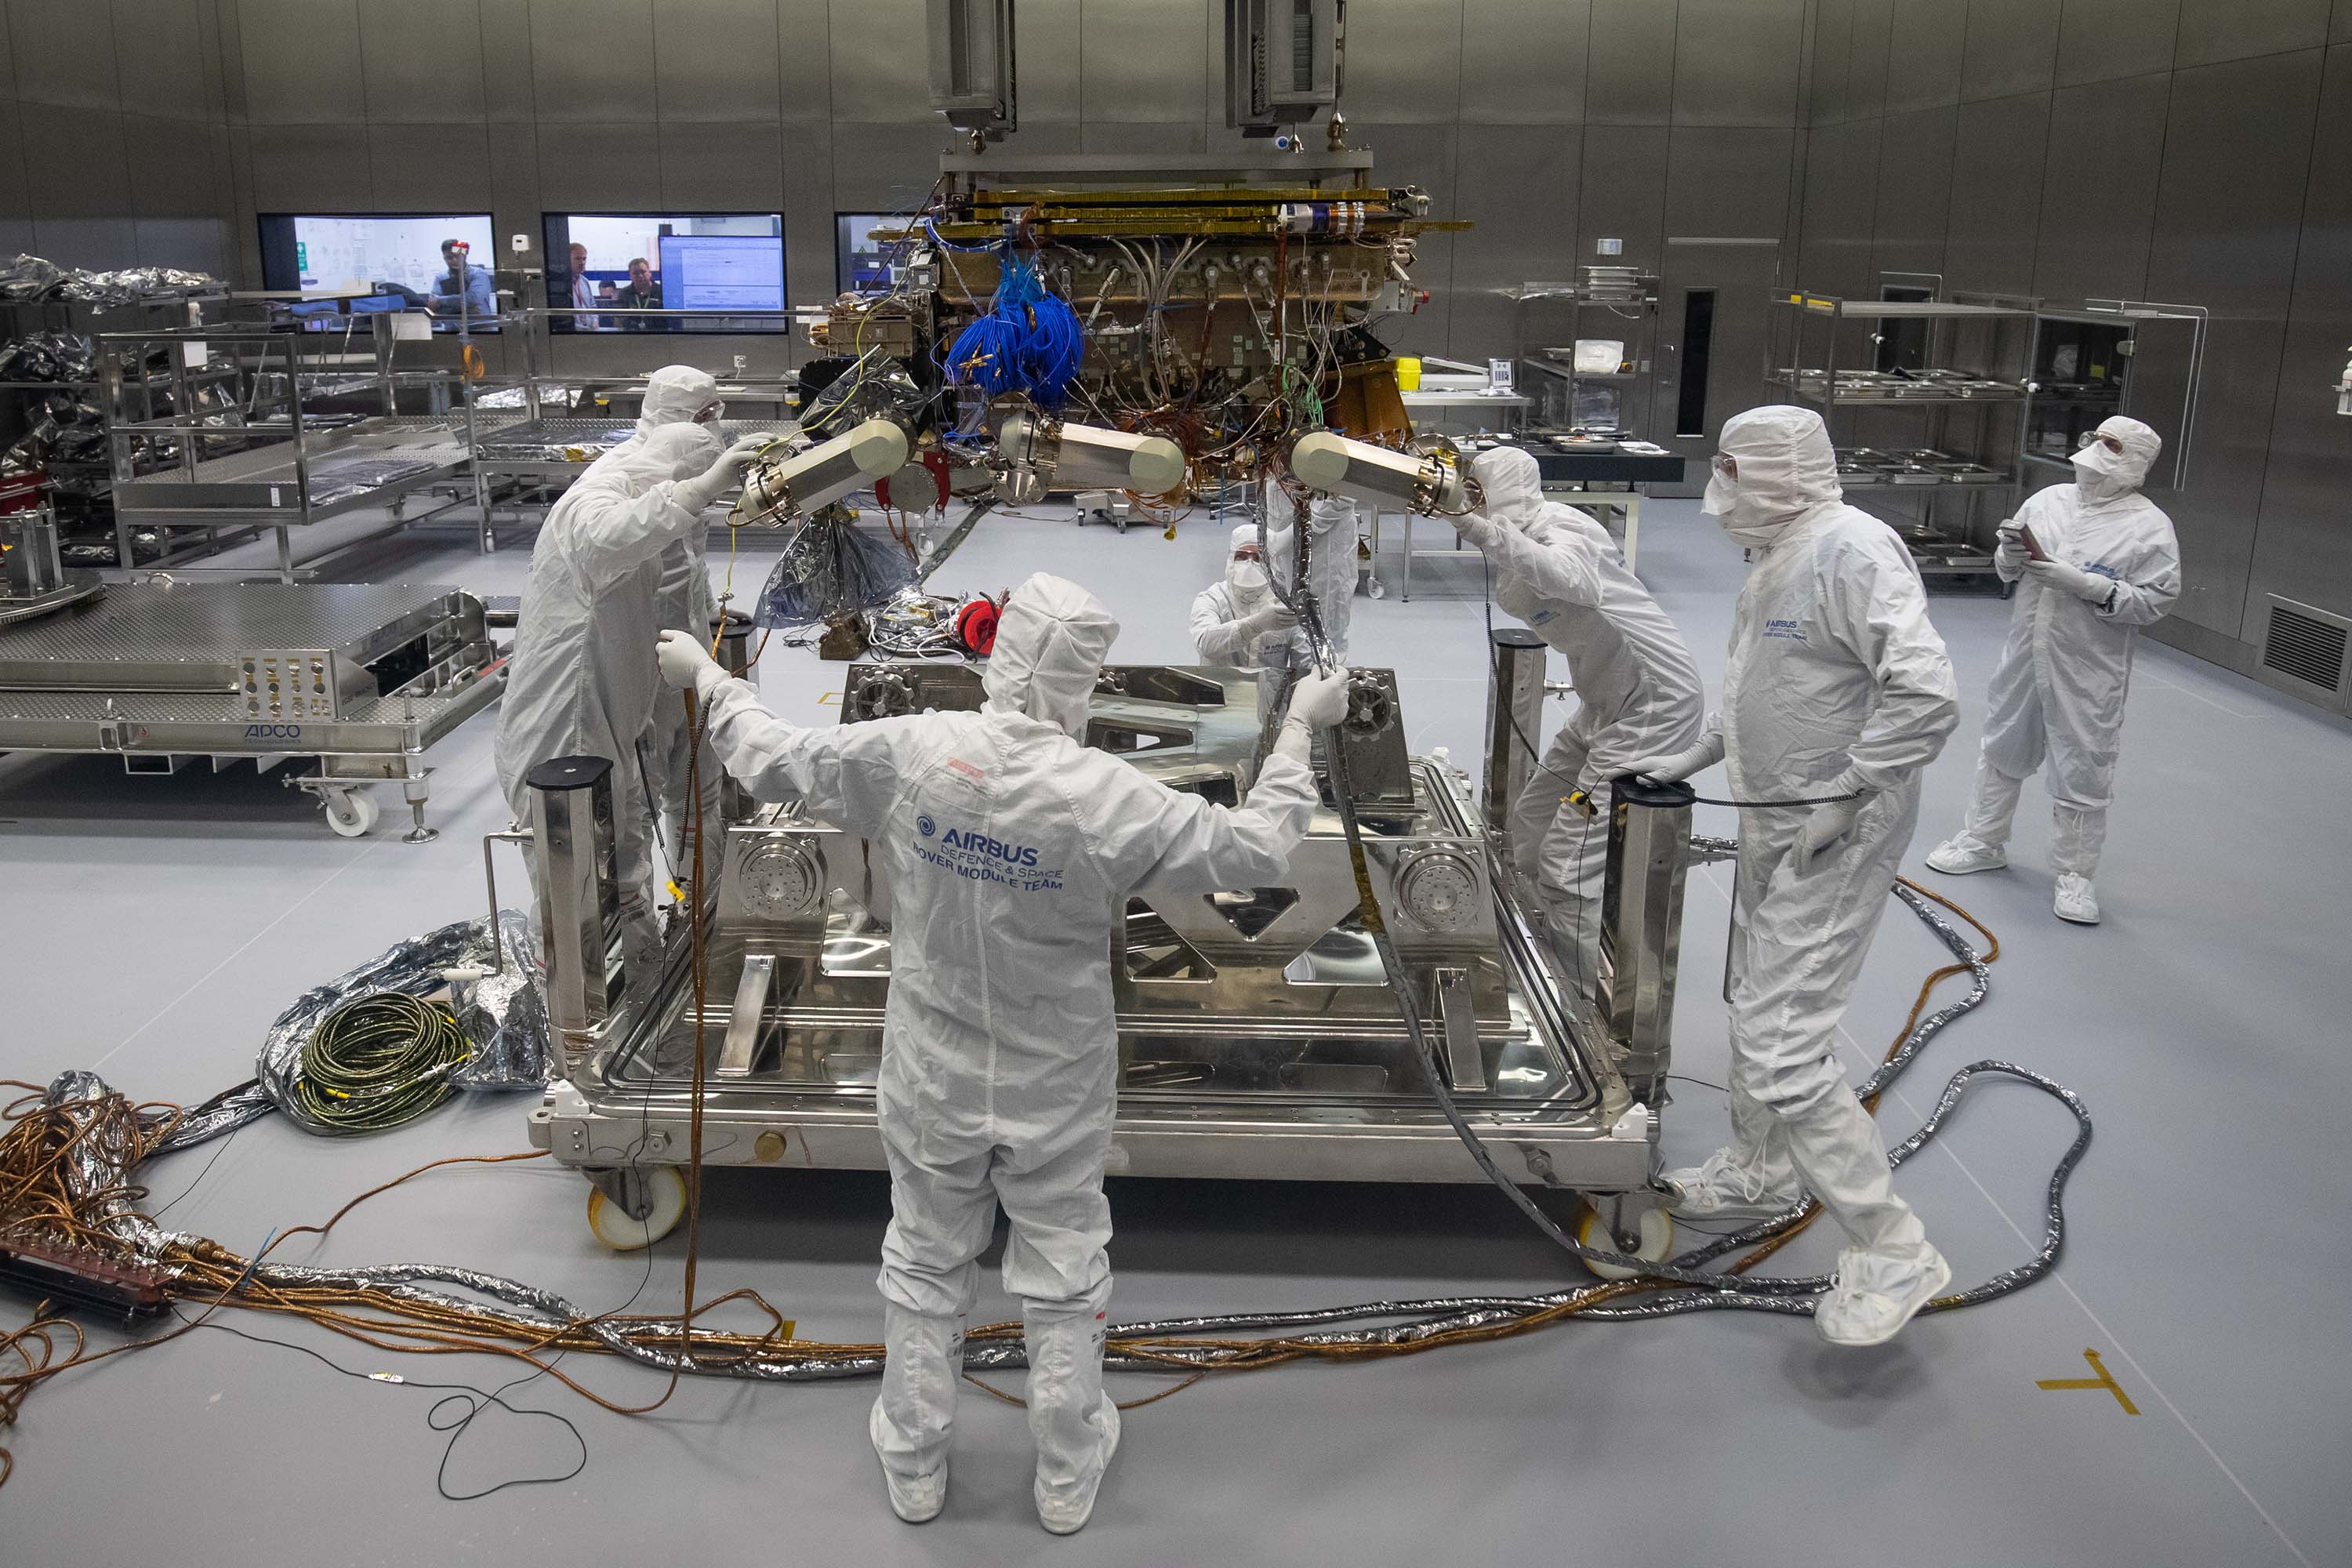 Workers prepare the European Space Agency's ExoMars rover at an Airbus facility in Stevenage, England, in August 2019.